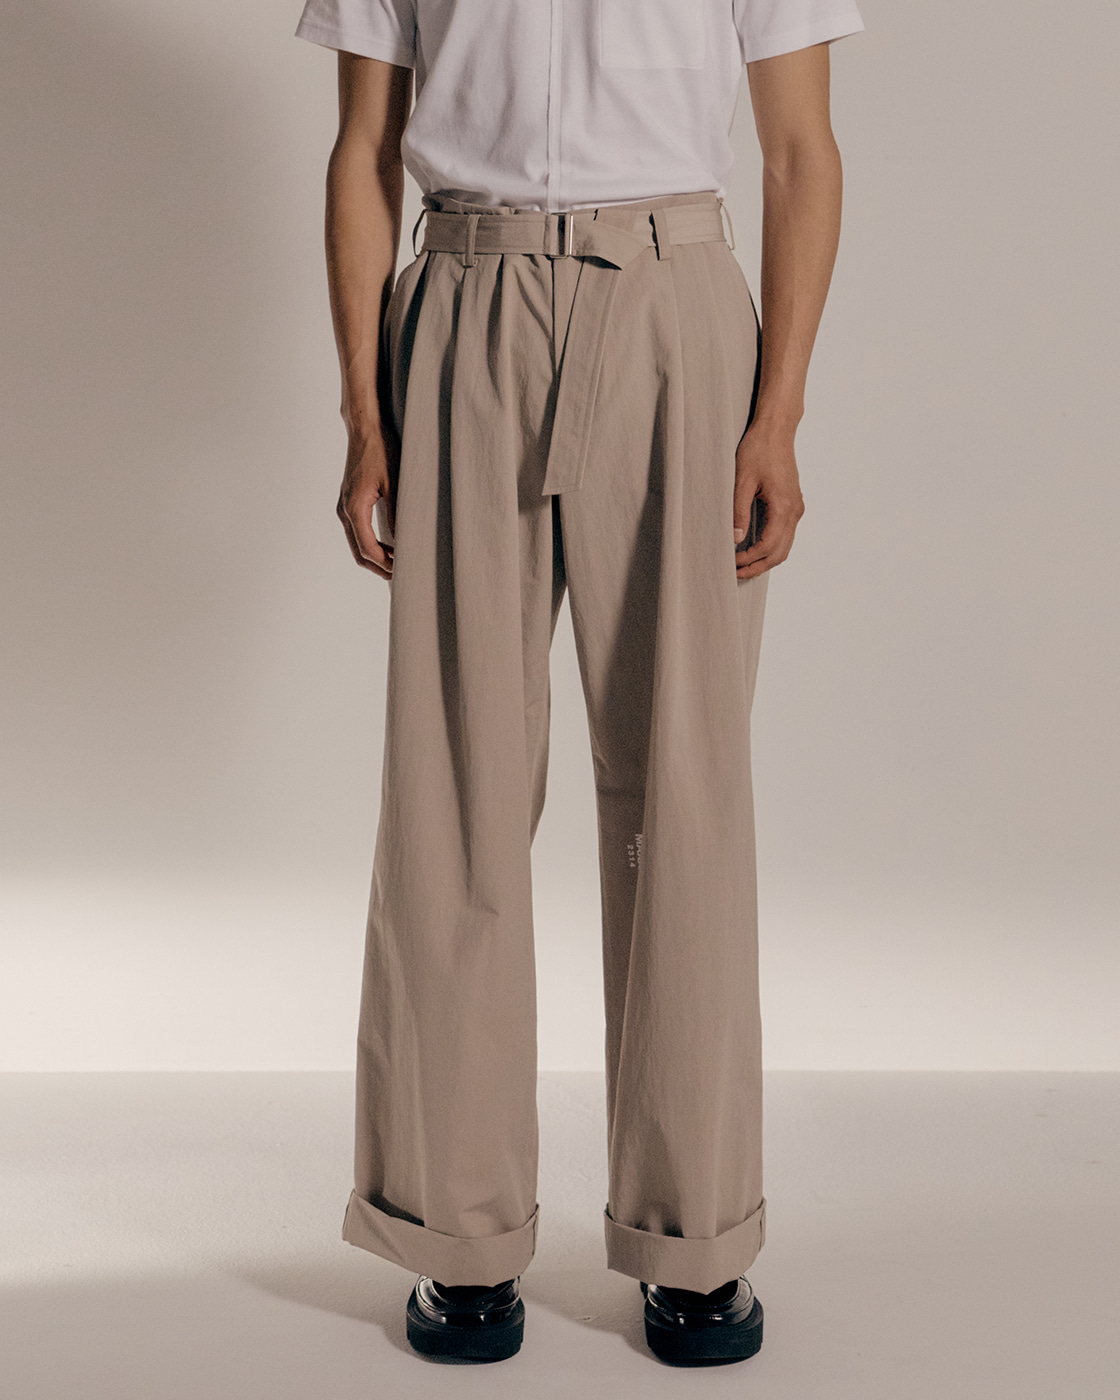 Beige Cotton Nylon Loose Trousers